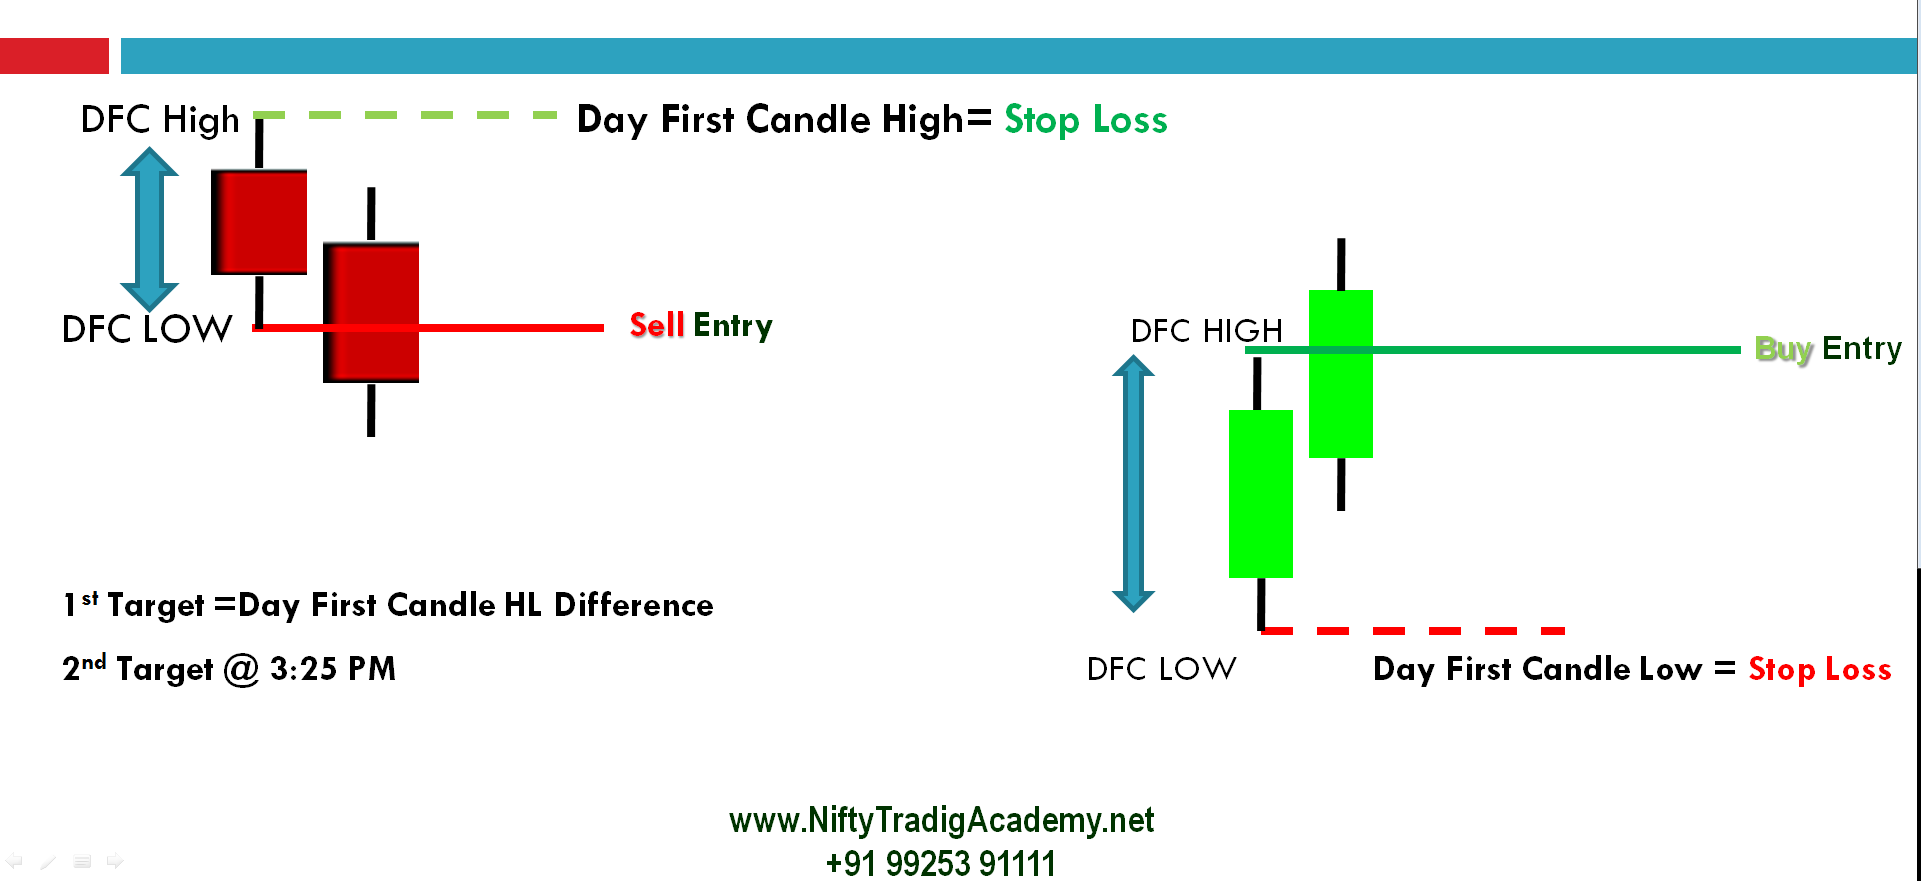 What is your favorite intraday strategy? - Quora